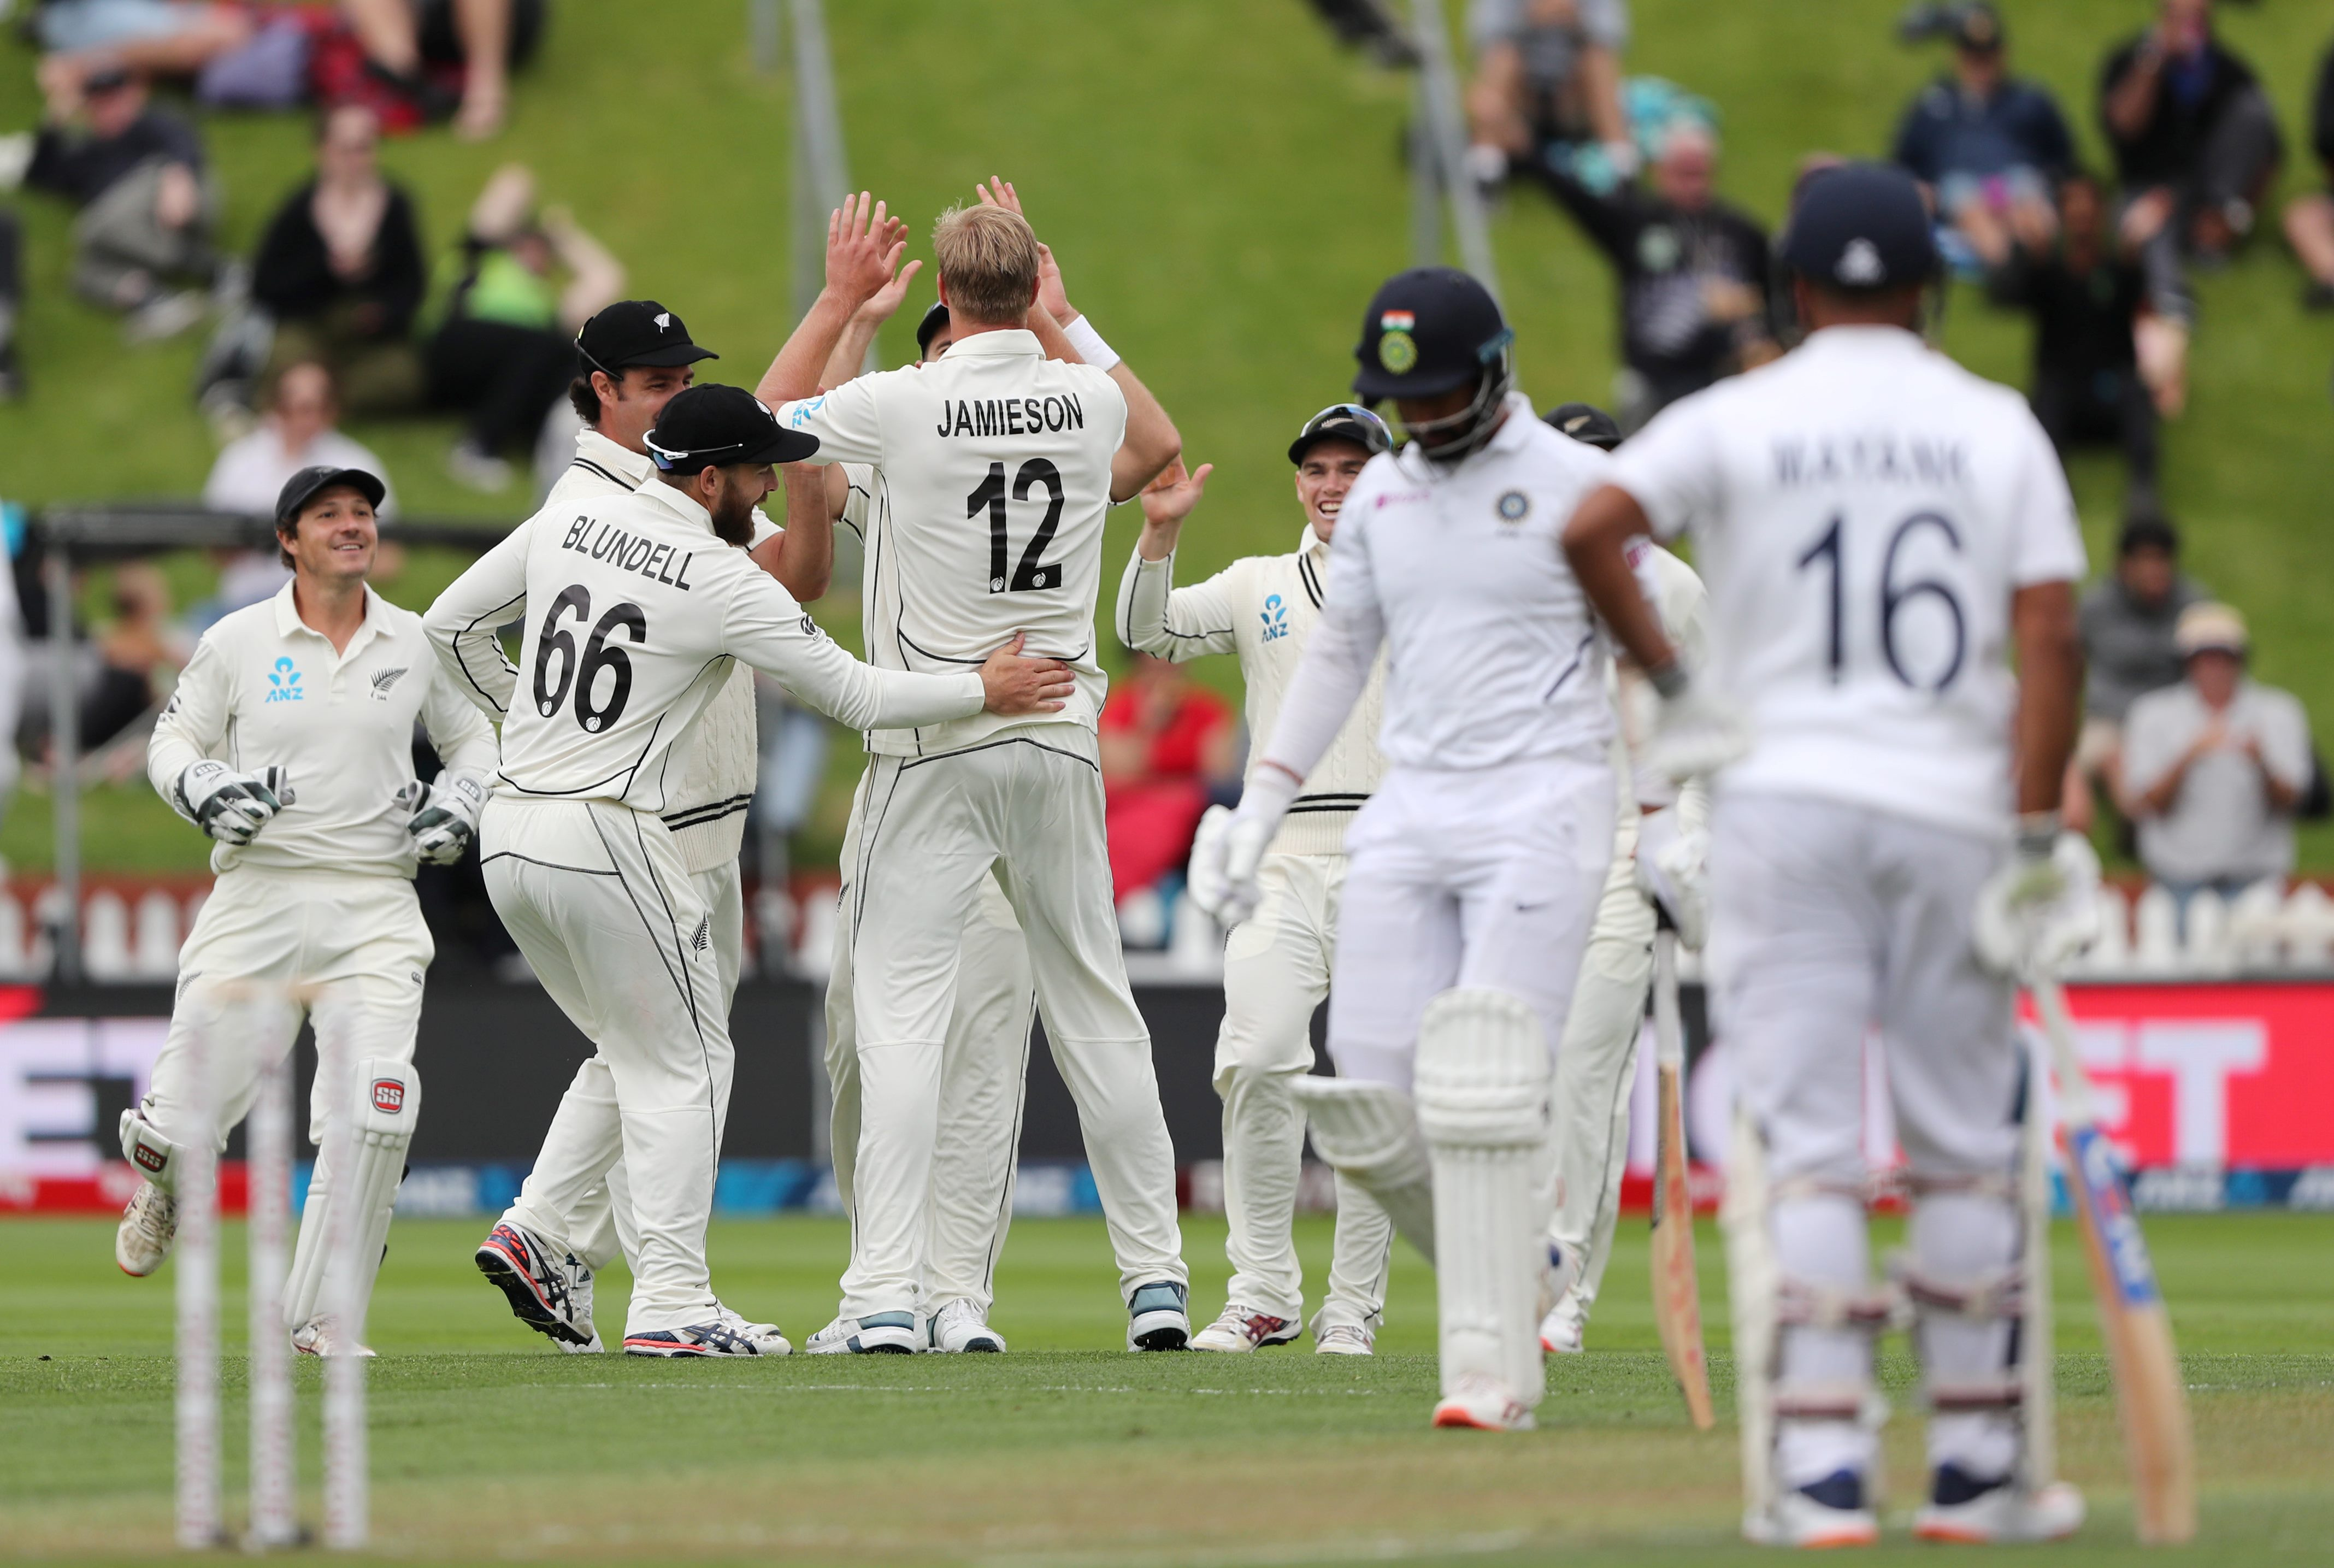 Jamieson puts NZ on top on day one against India | Otago Daily Times Online News